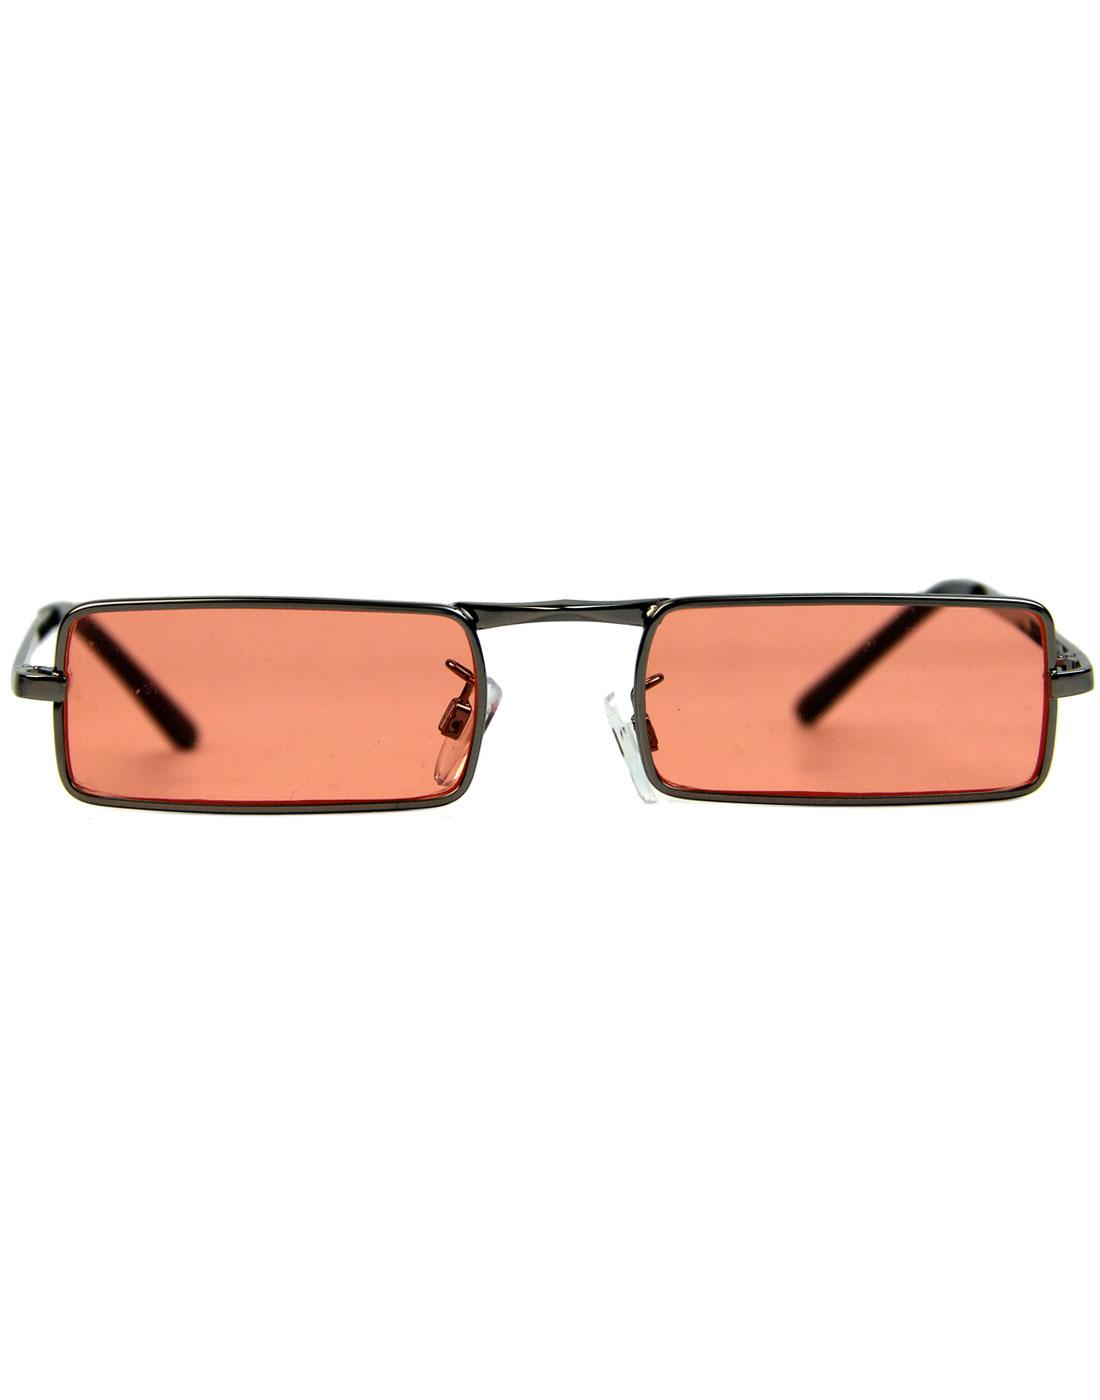 McGuinn MADCAP ENGLAND 1960s Granny Glasses ORANGE